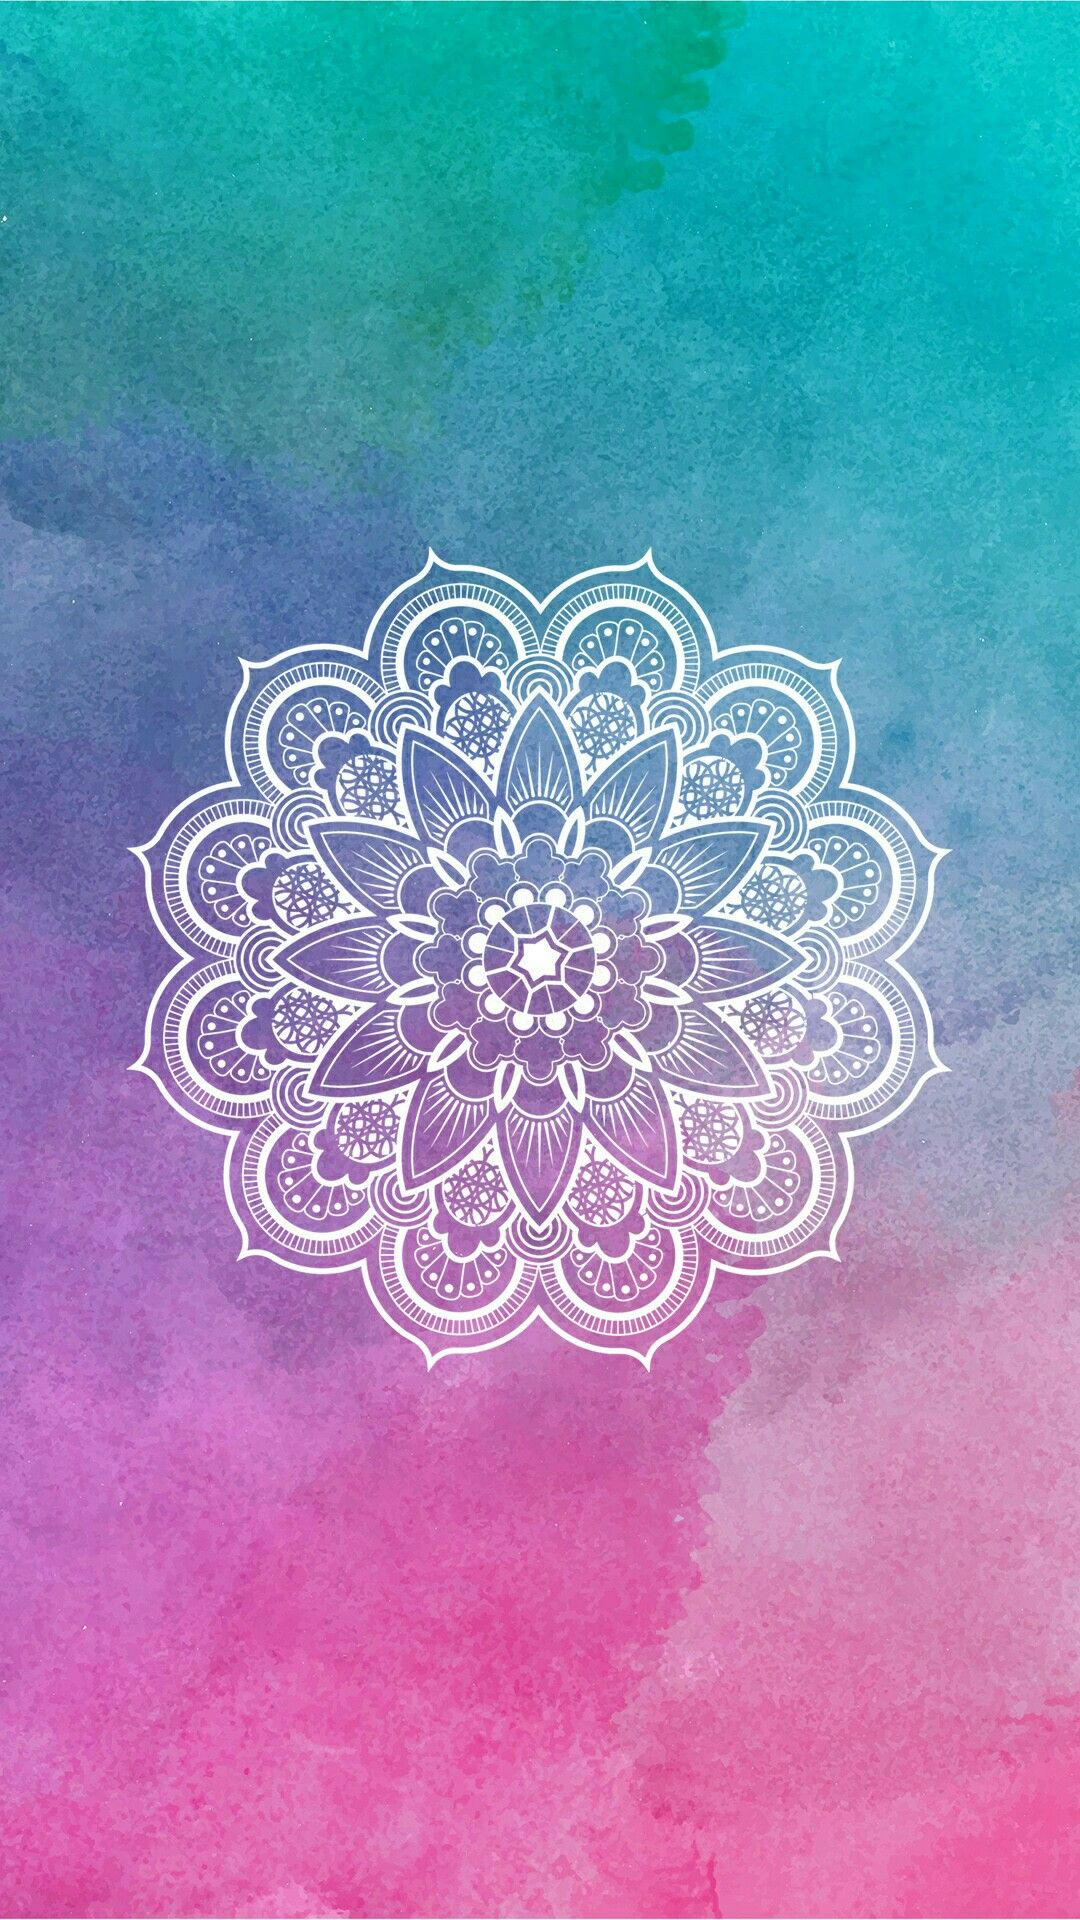 Wallpaper iphone mandala - Mandala Wallpaper Lockscreen Colorido